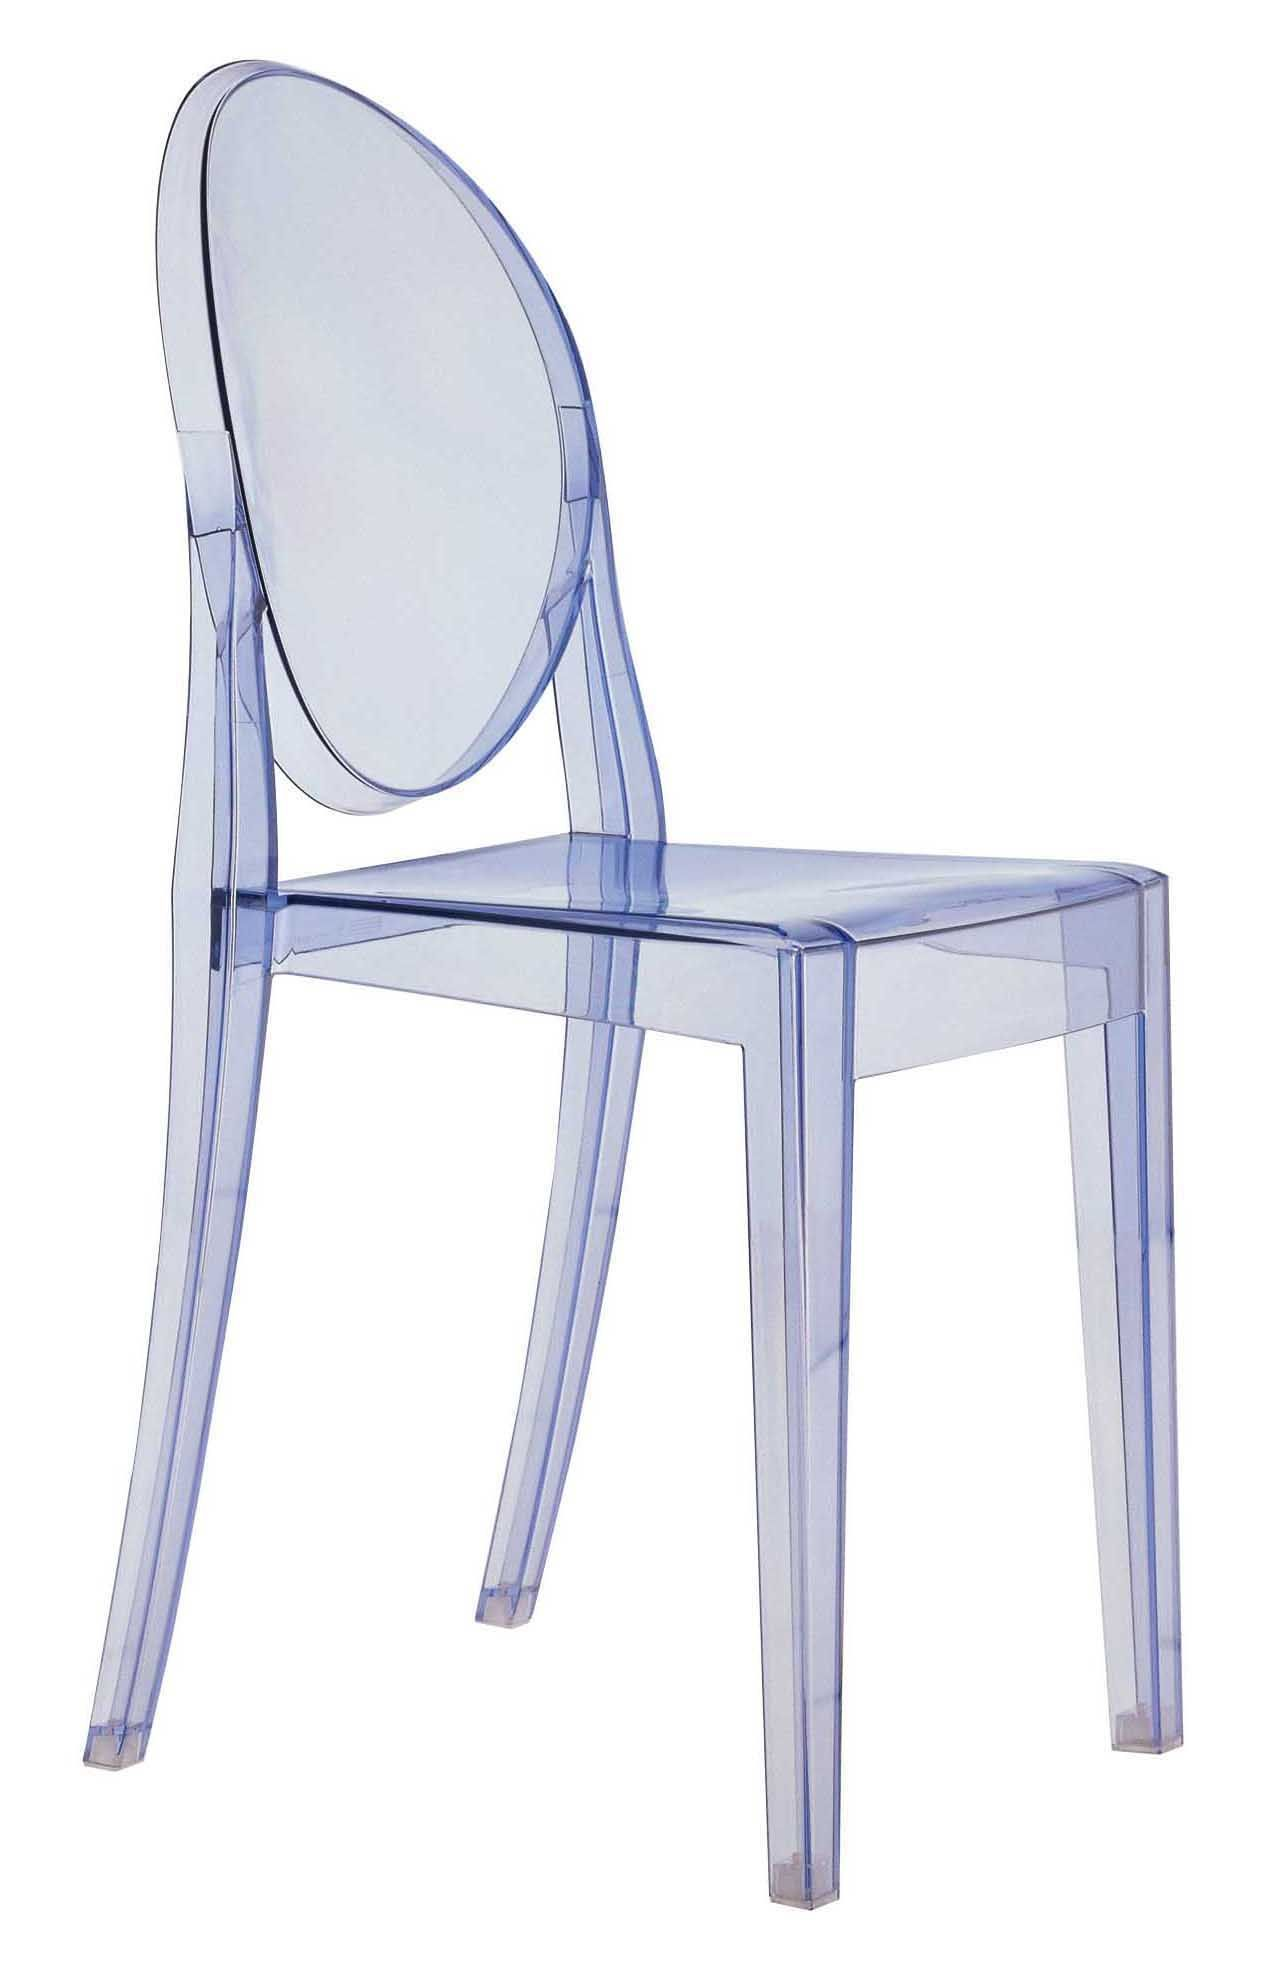 Furniture - Chairs - Victoria Ghost Stacking chair - Polycarbonate by Kartell - Sky blue - Polycarbonate